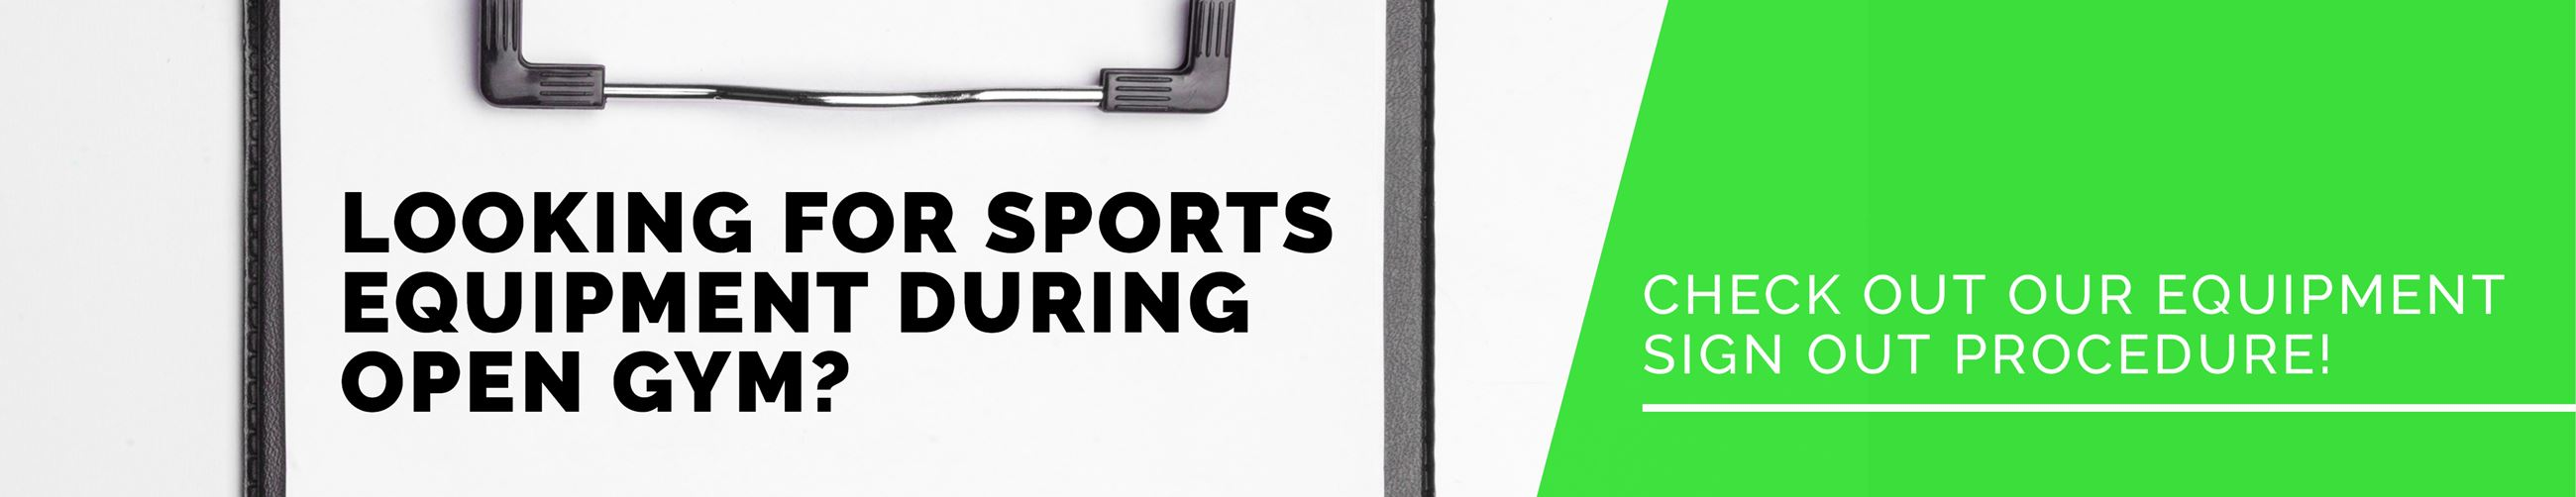 Gym Equipment Policy Banner